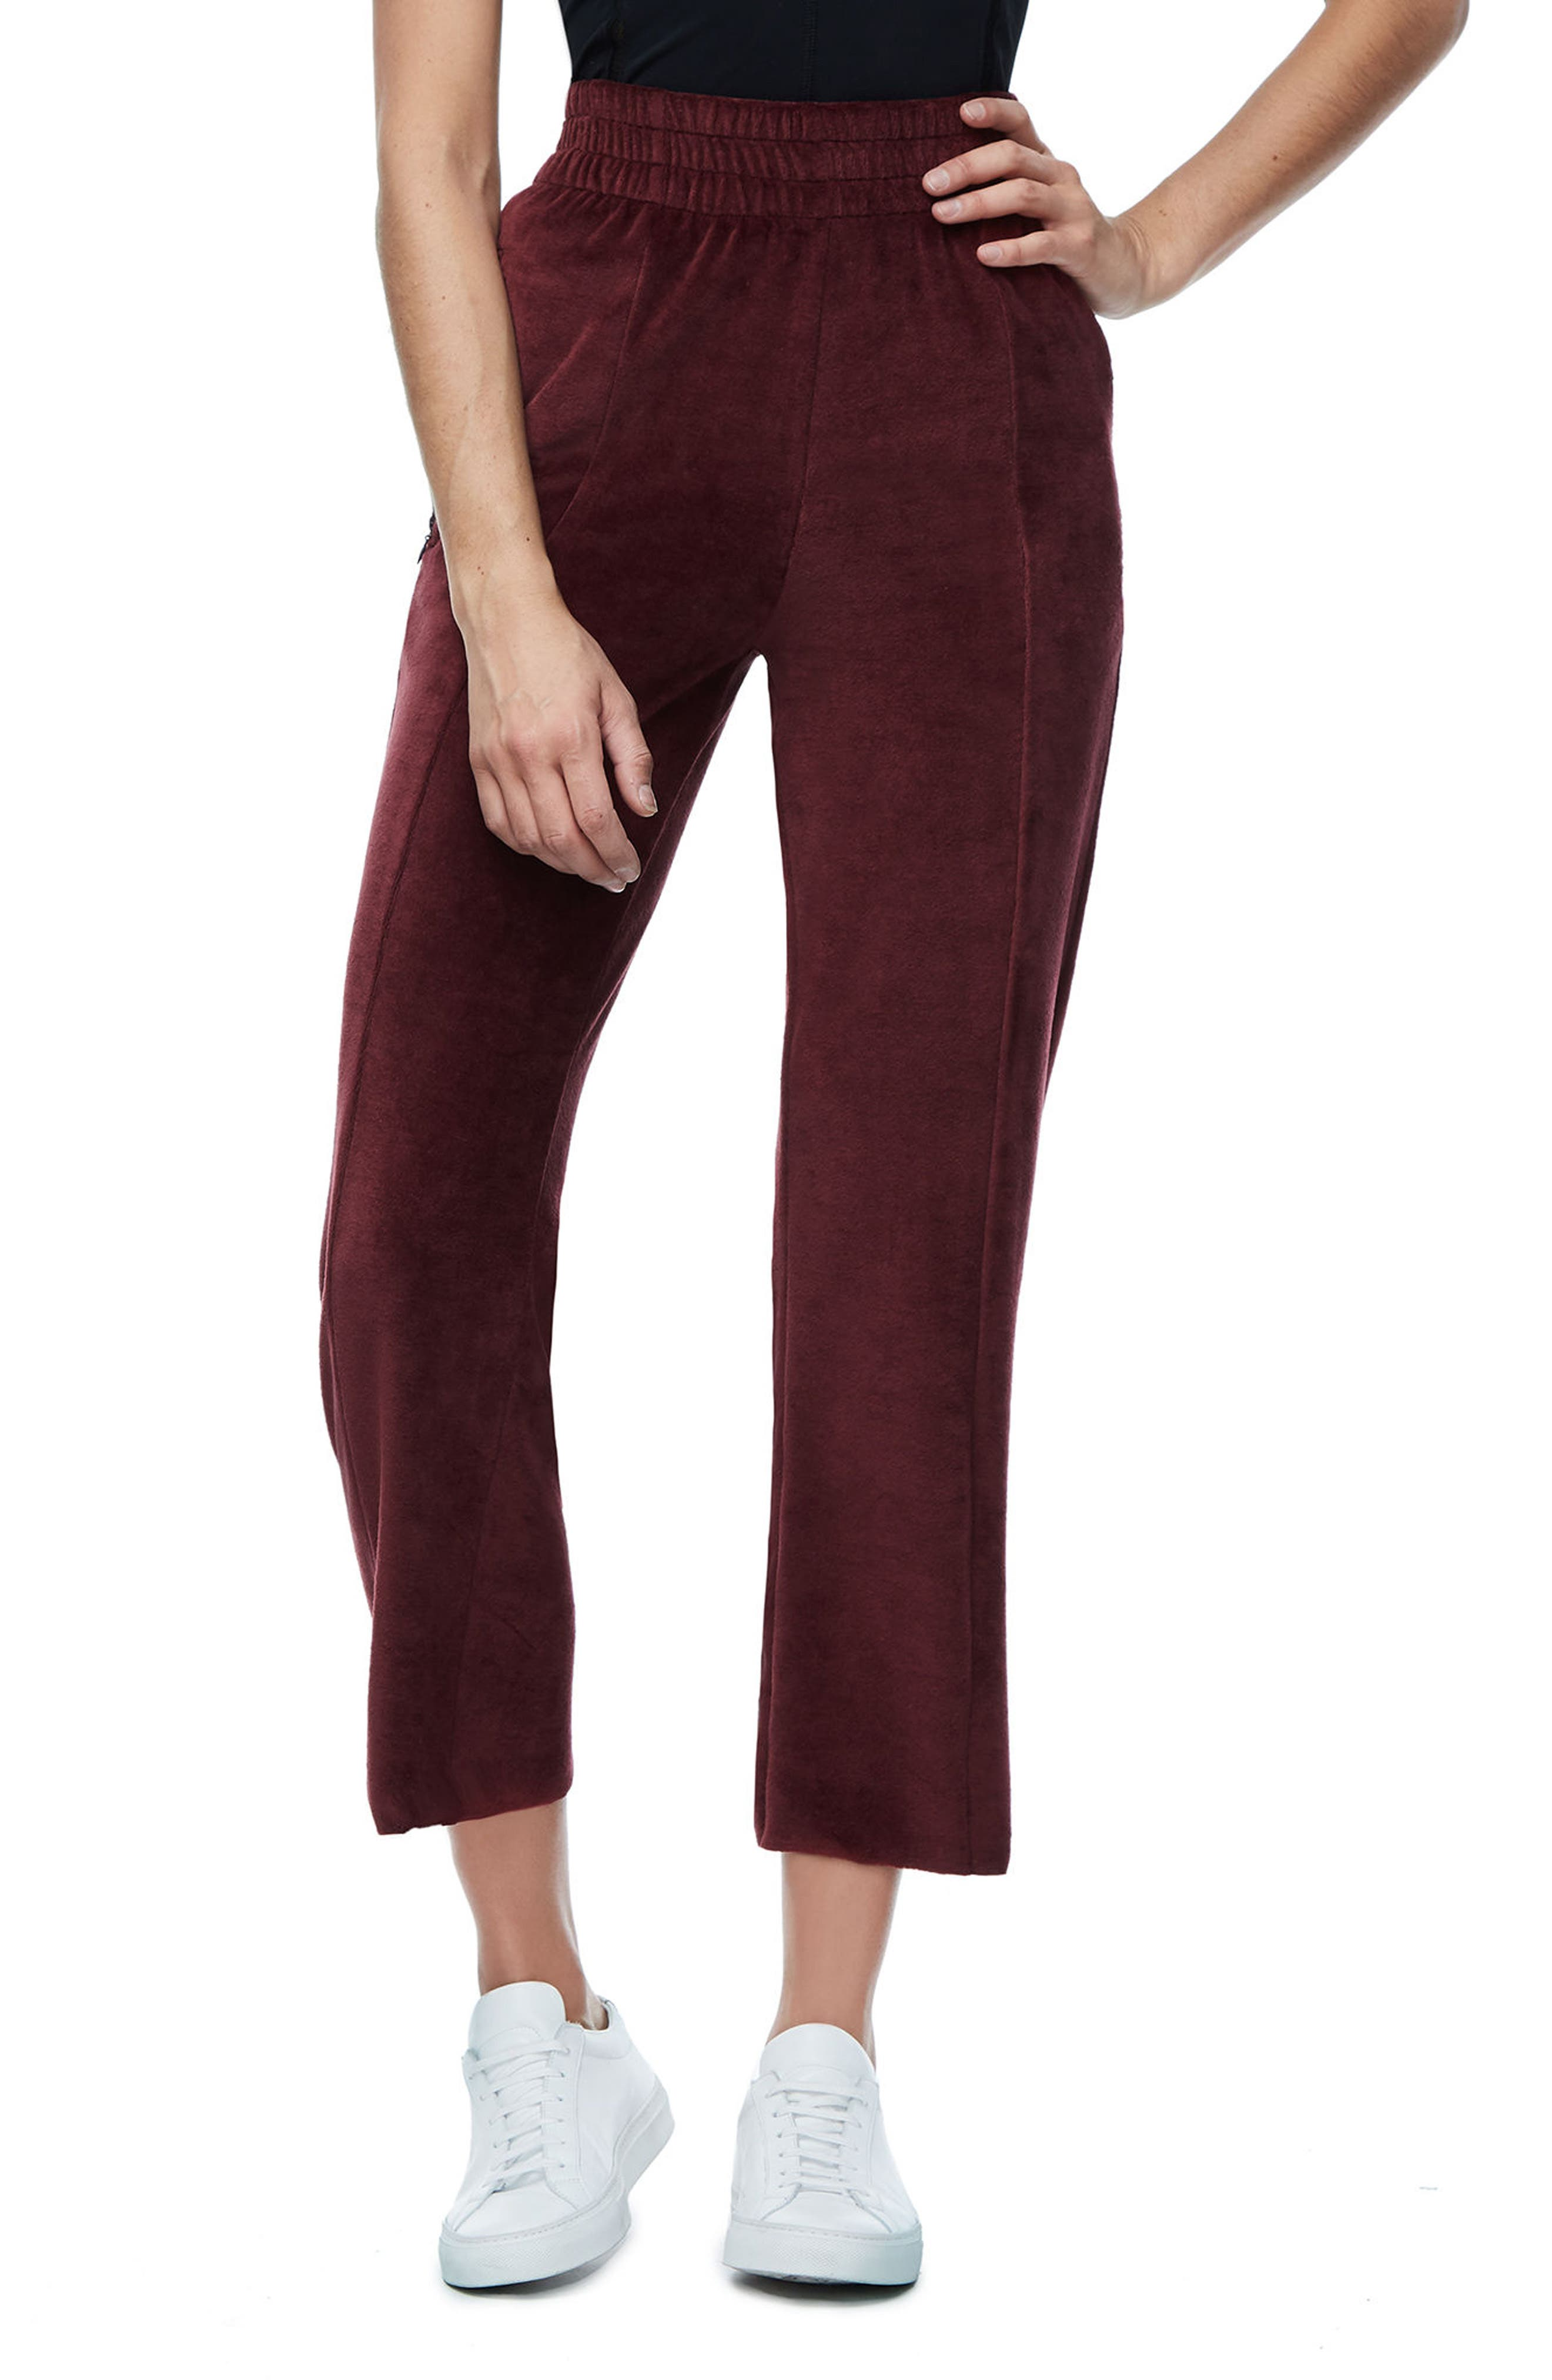 Alternate Image 1 Selected - Good American Good Sweats The High Waist Sweatpants (Extended Sizes)